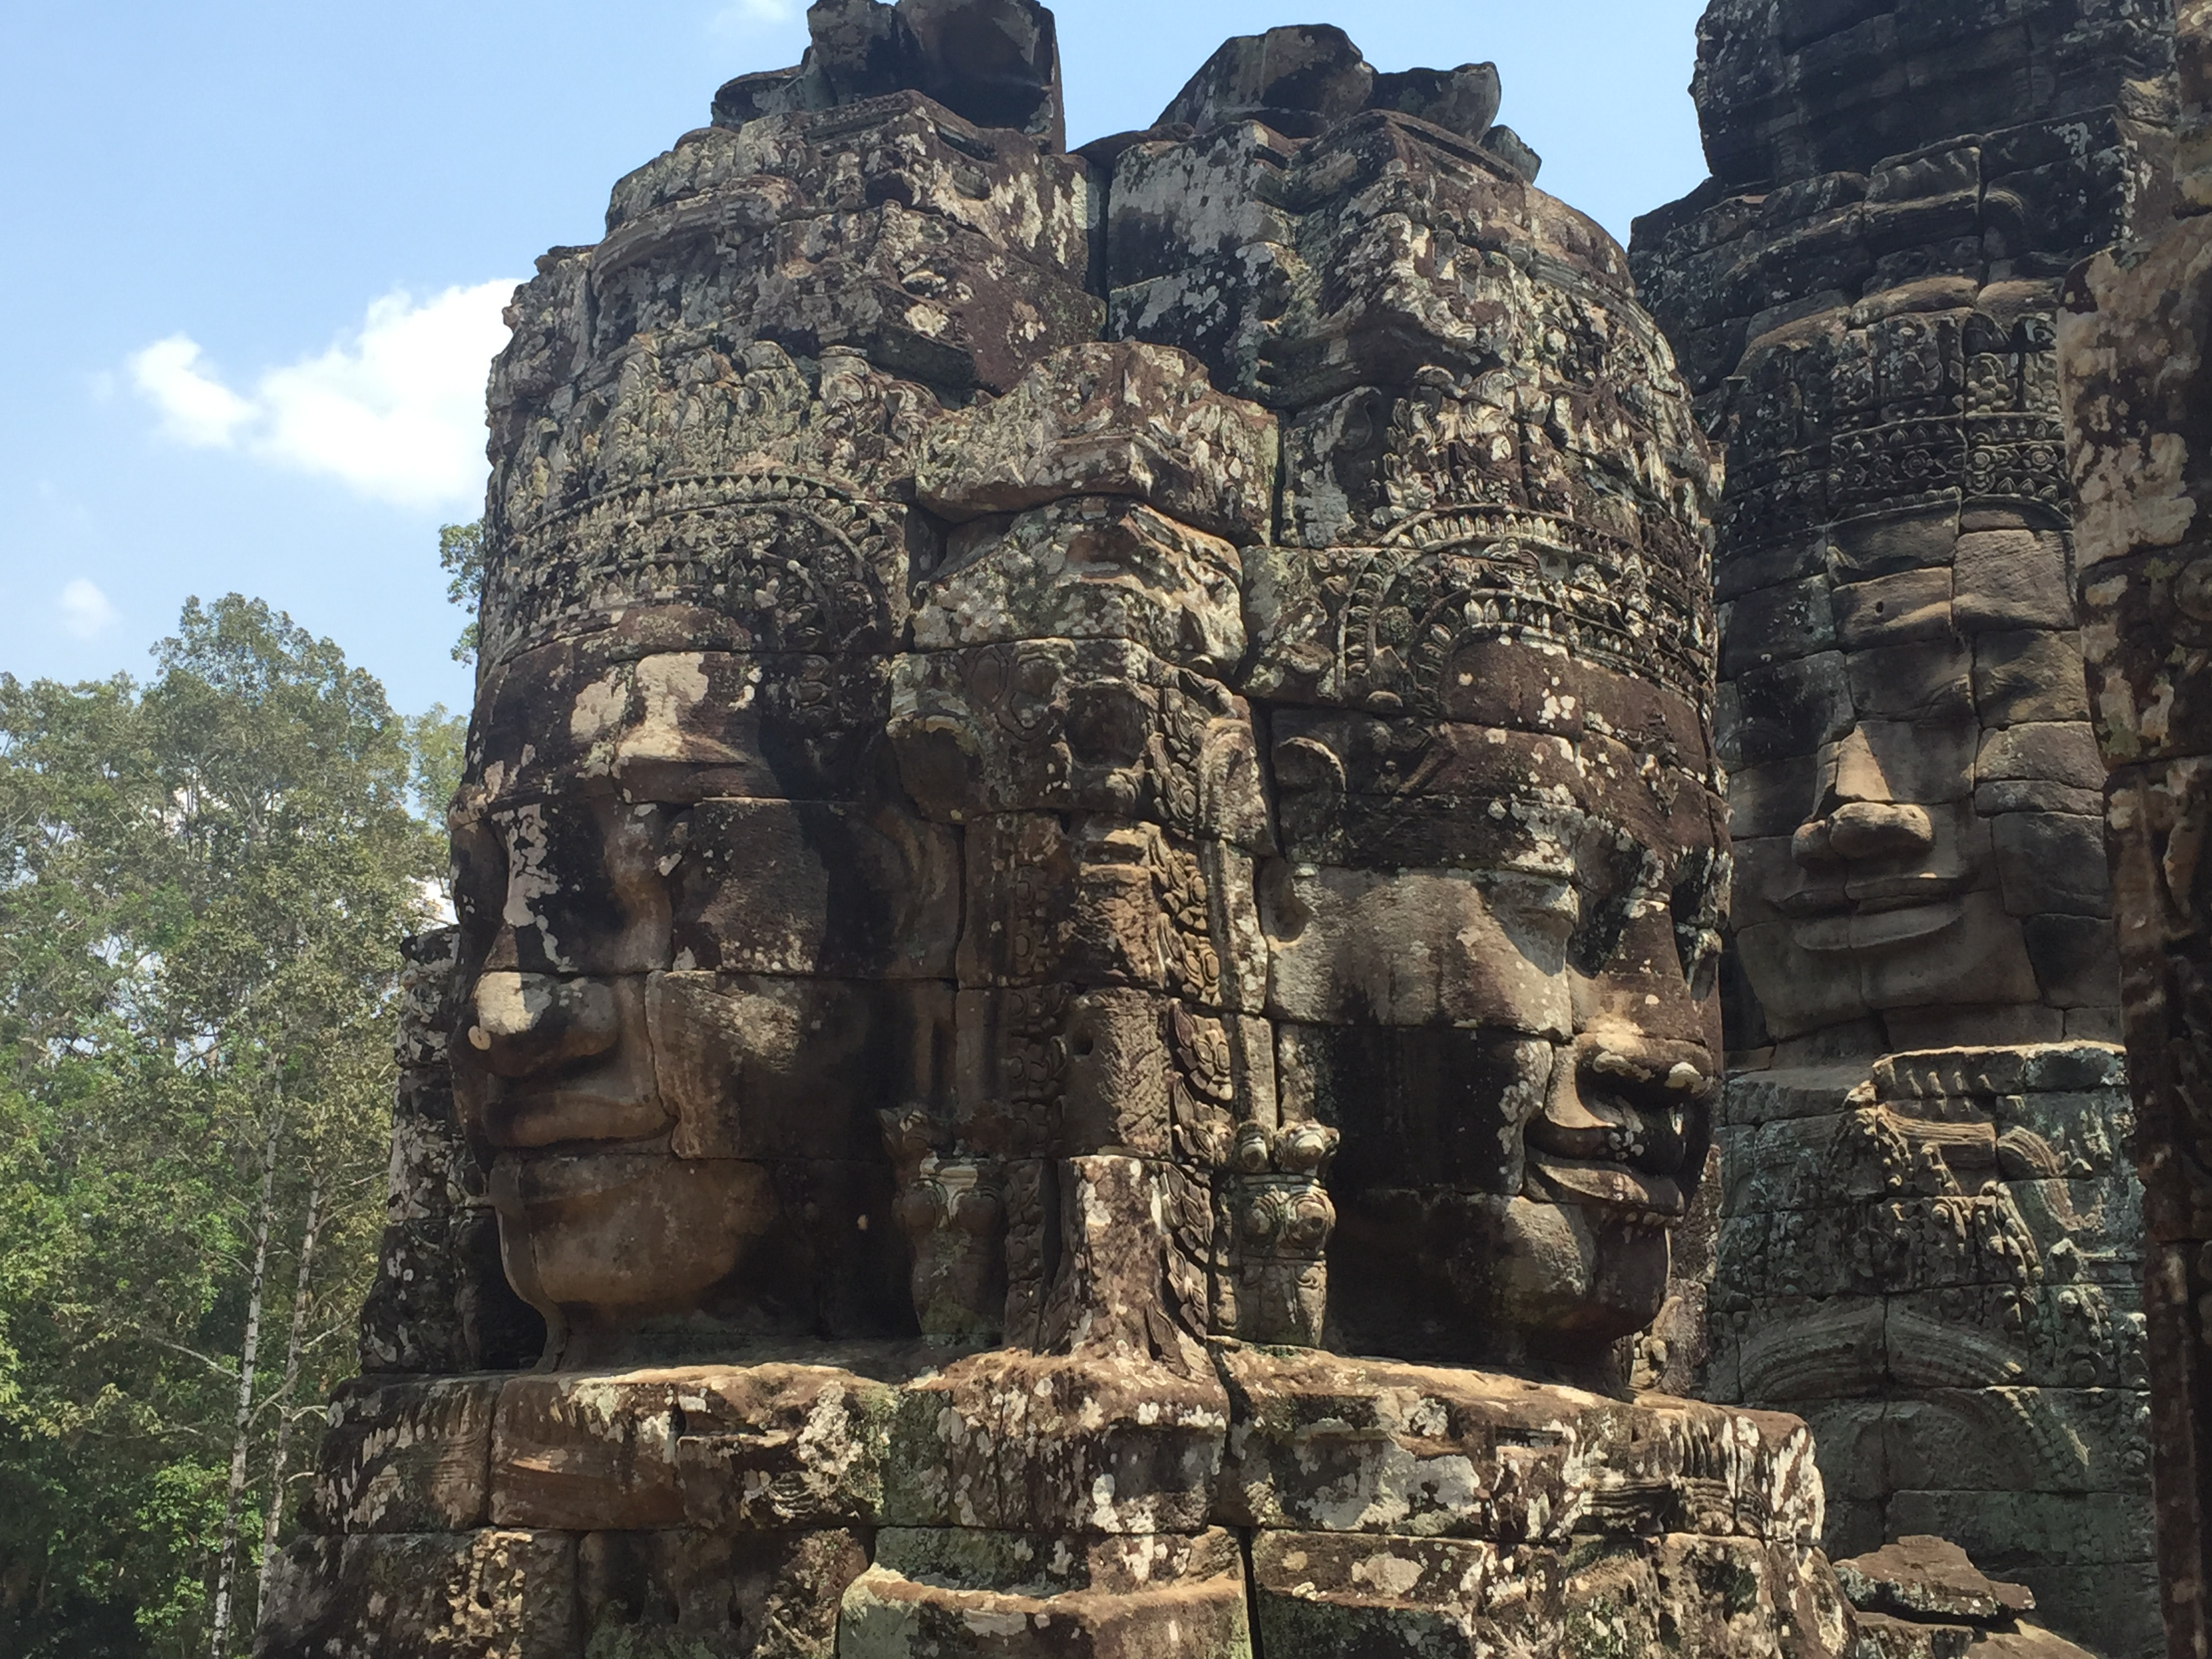 Siem Reap (Angkor Wat) in 3 days